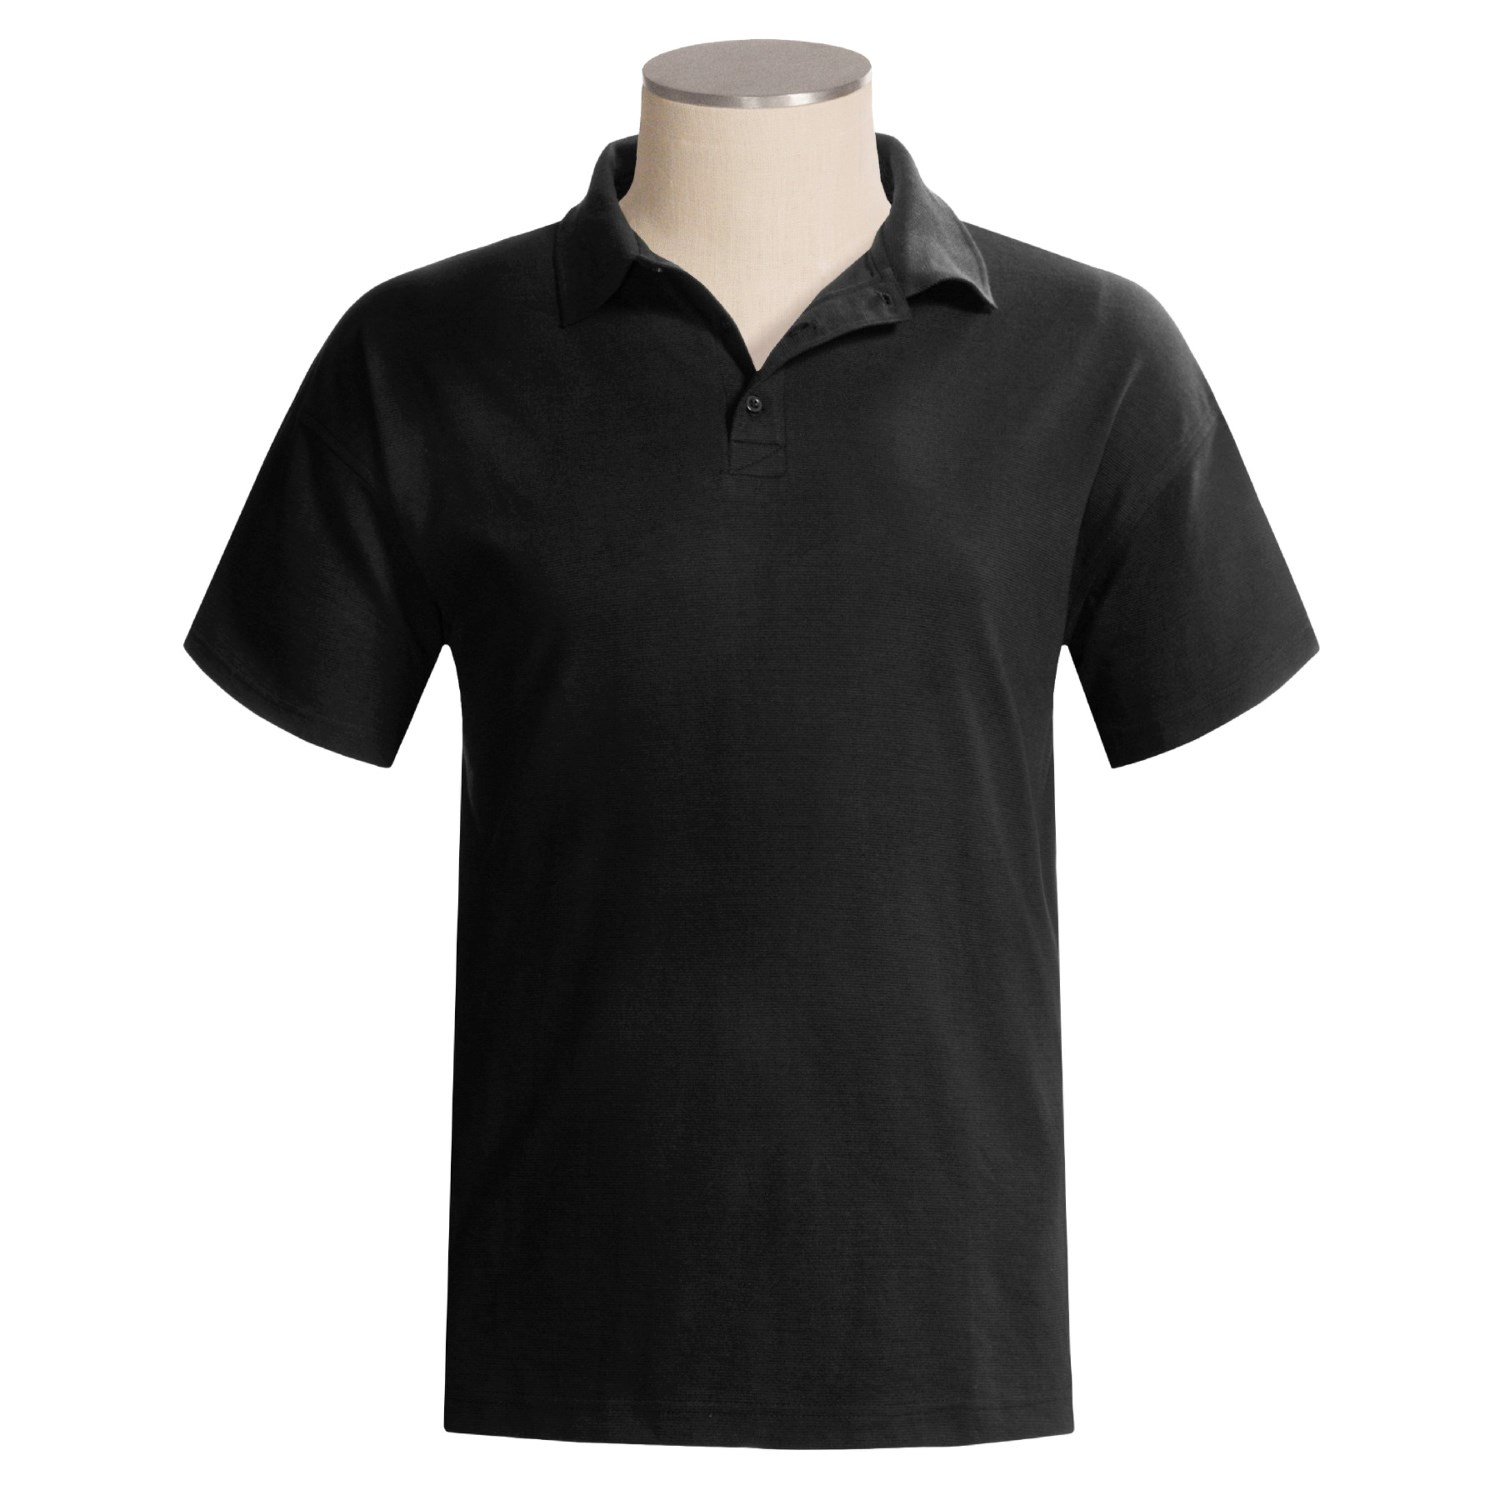 Roper Ribbed Polo Shirt For Men And Big Tall Men 2160y